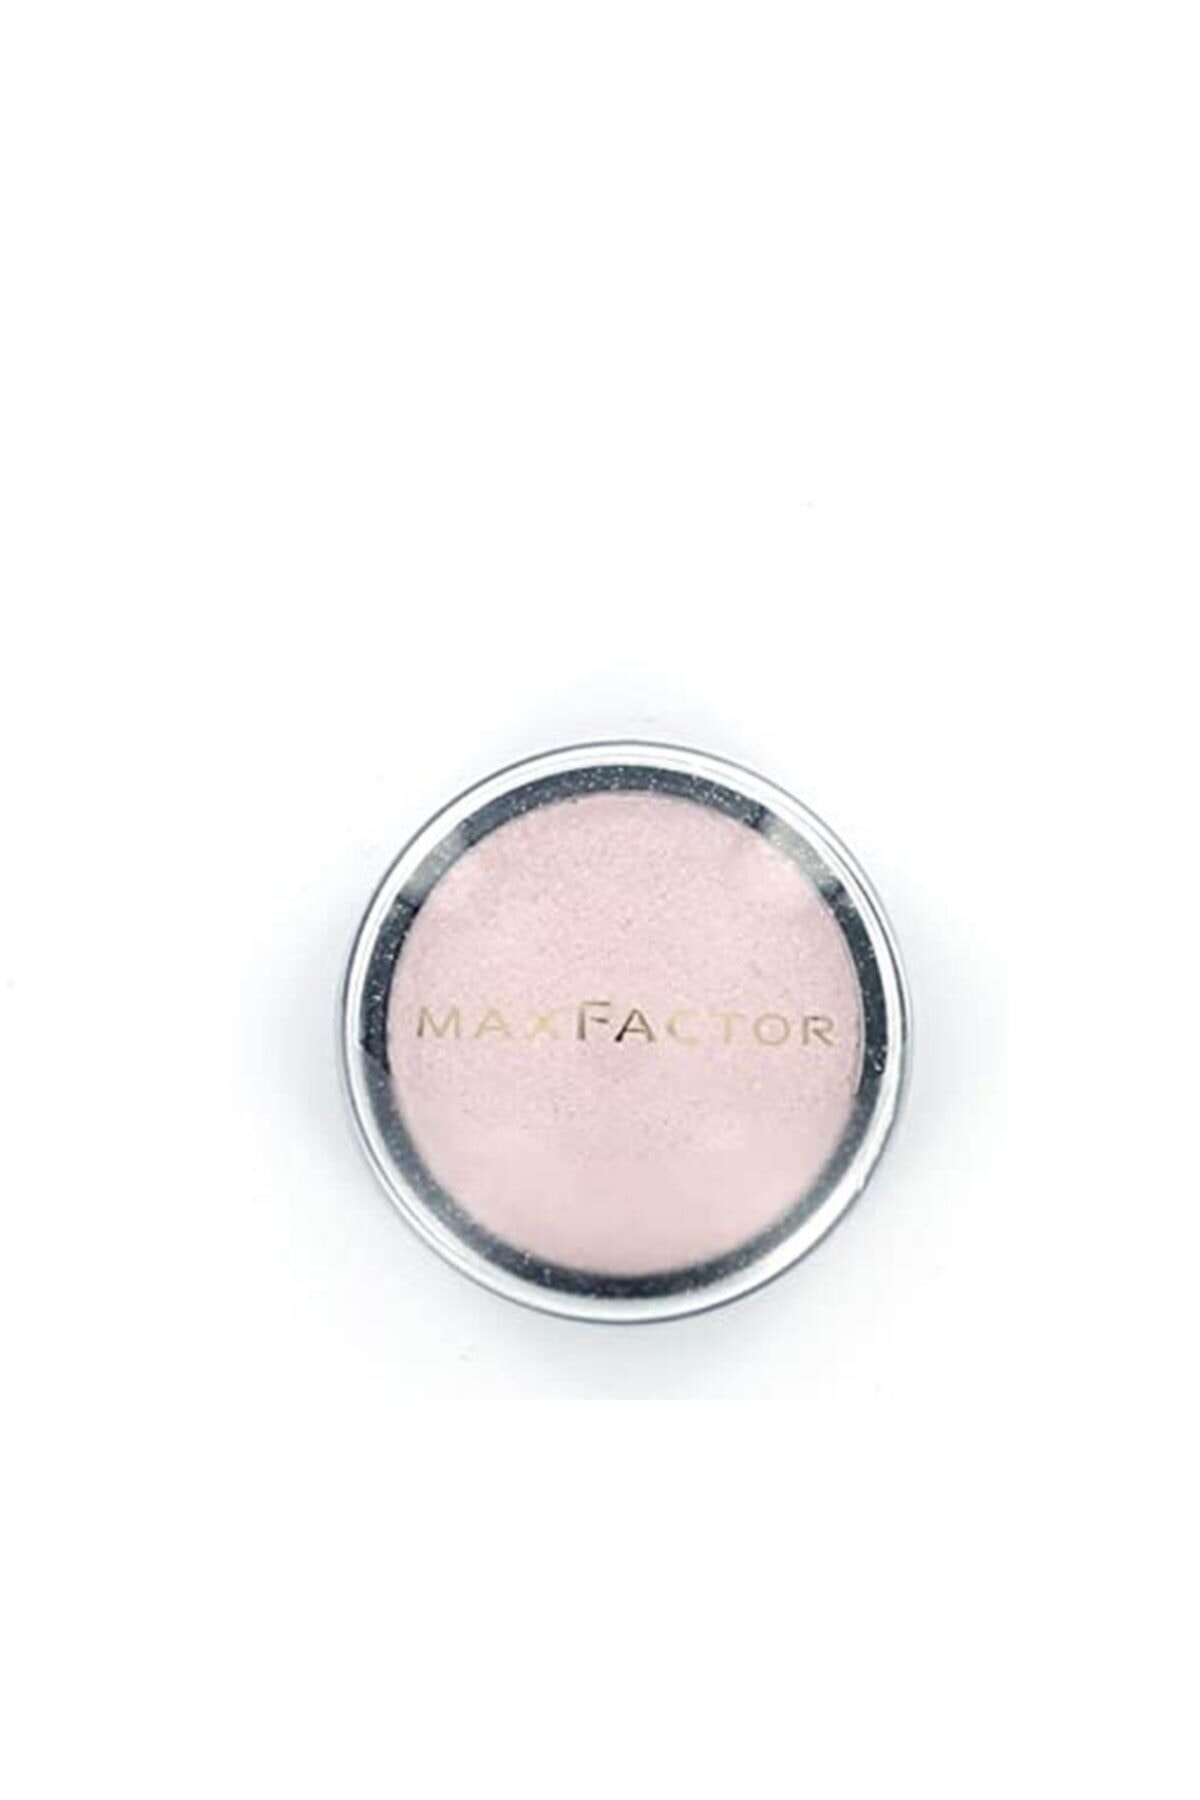 Max Factor Eyeshadow 500 - Pearly Pink 1